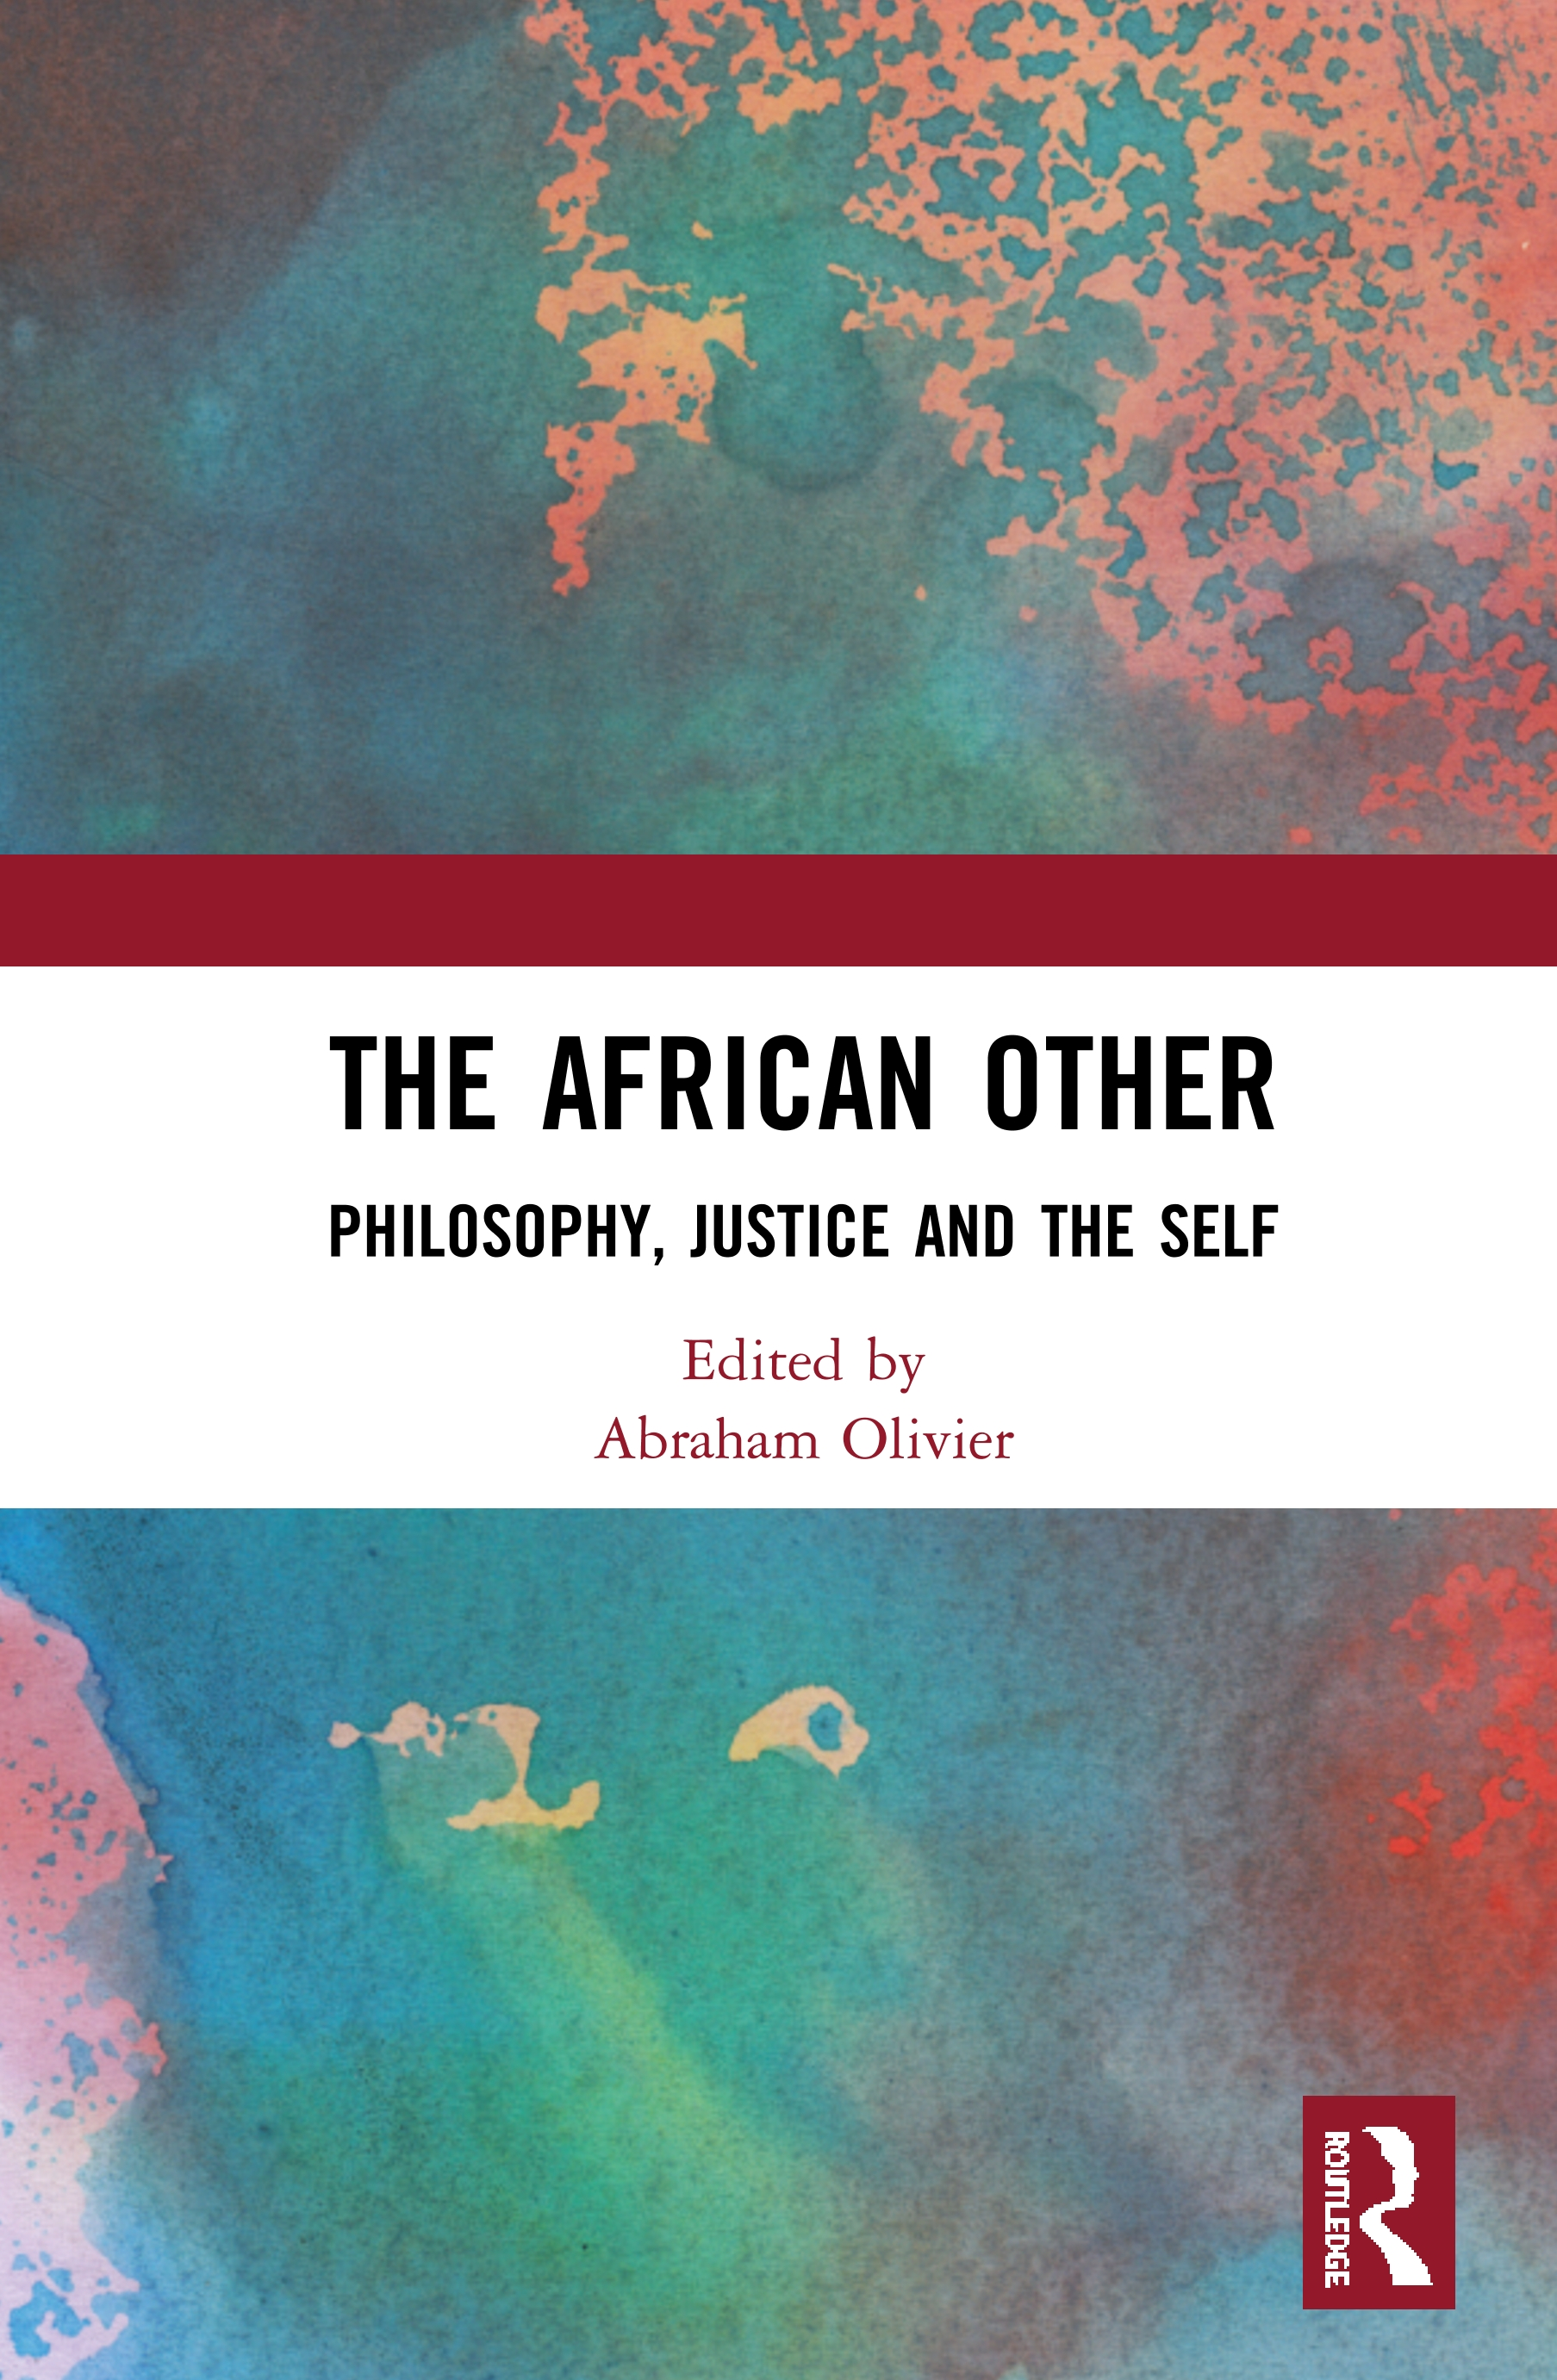 The African Other: Philosophy, Justice and the Self book cover